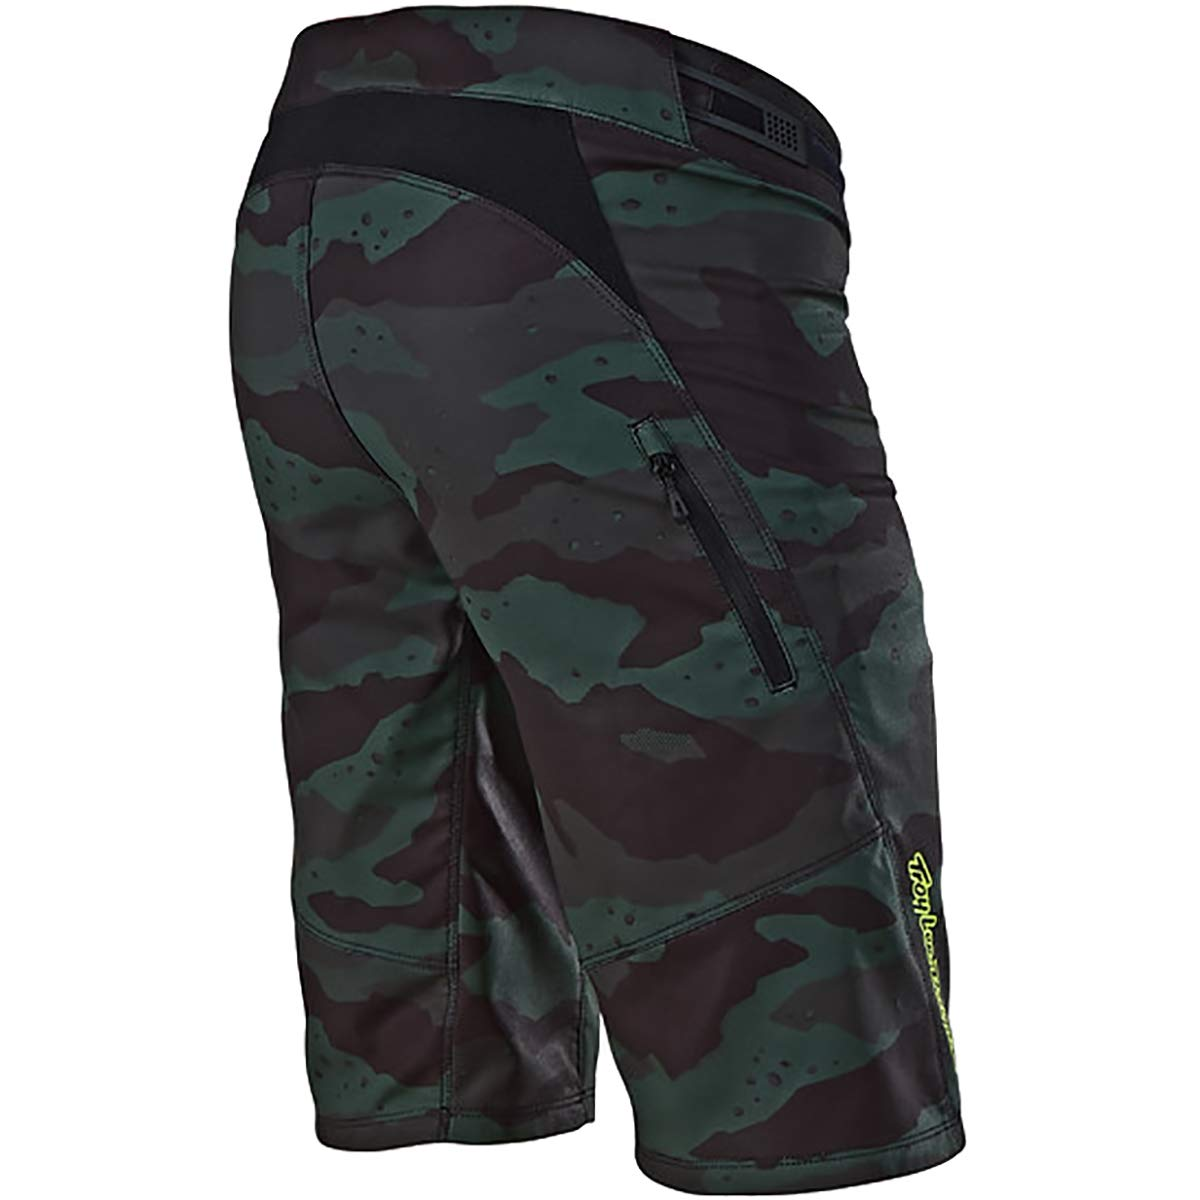 Troy Lee Designs Skyline Short - Women's Solid Camo Stealth/Black, S by Troy Lee Designs (Image #2)